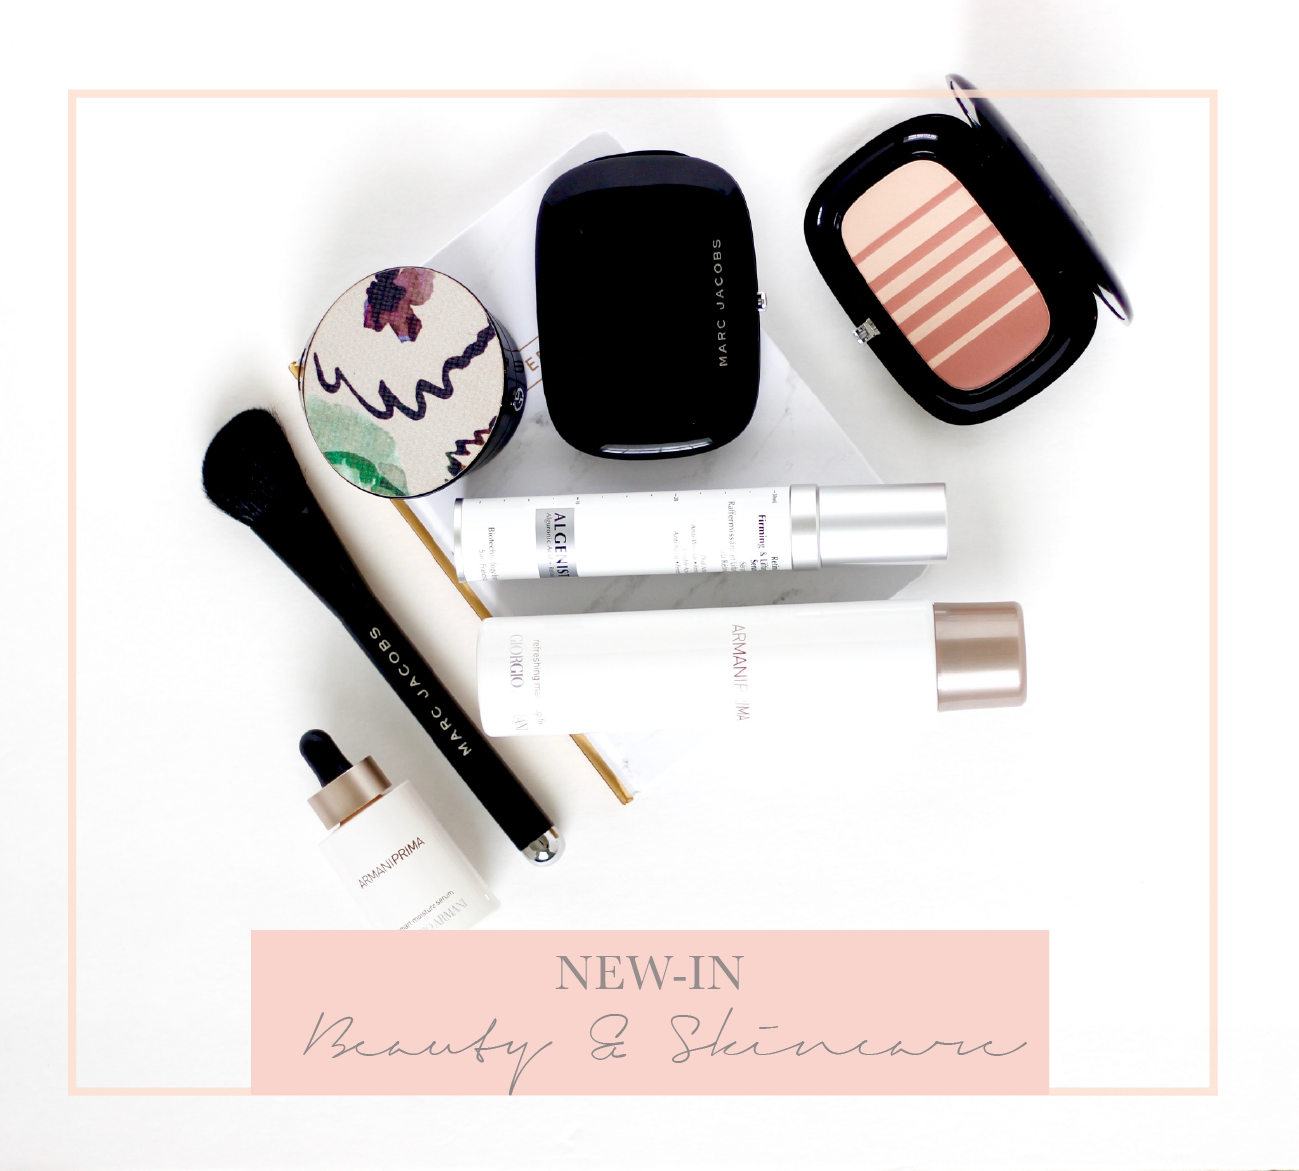 New in beauty and skincare